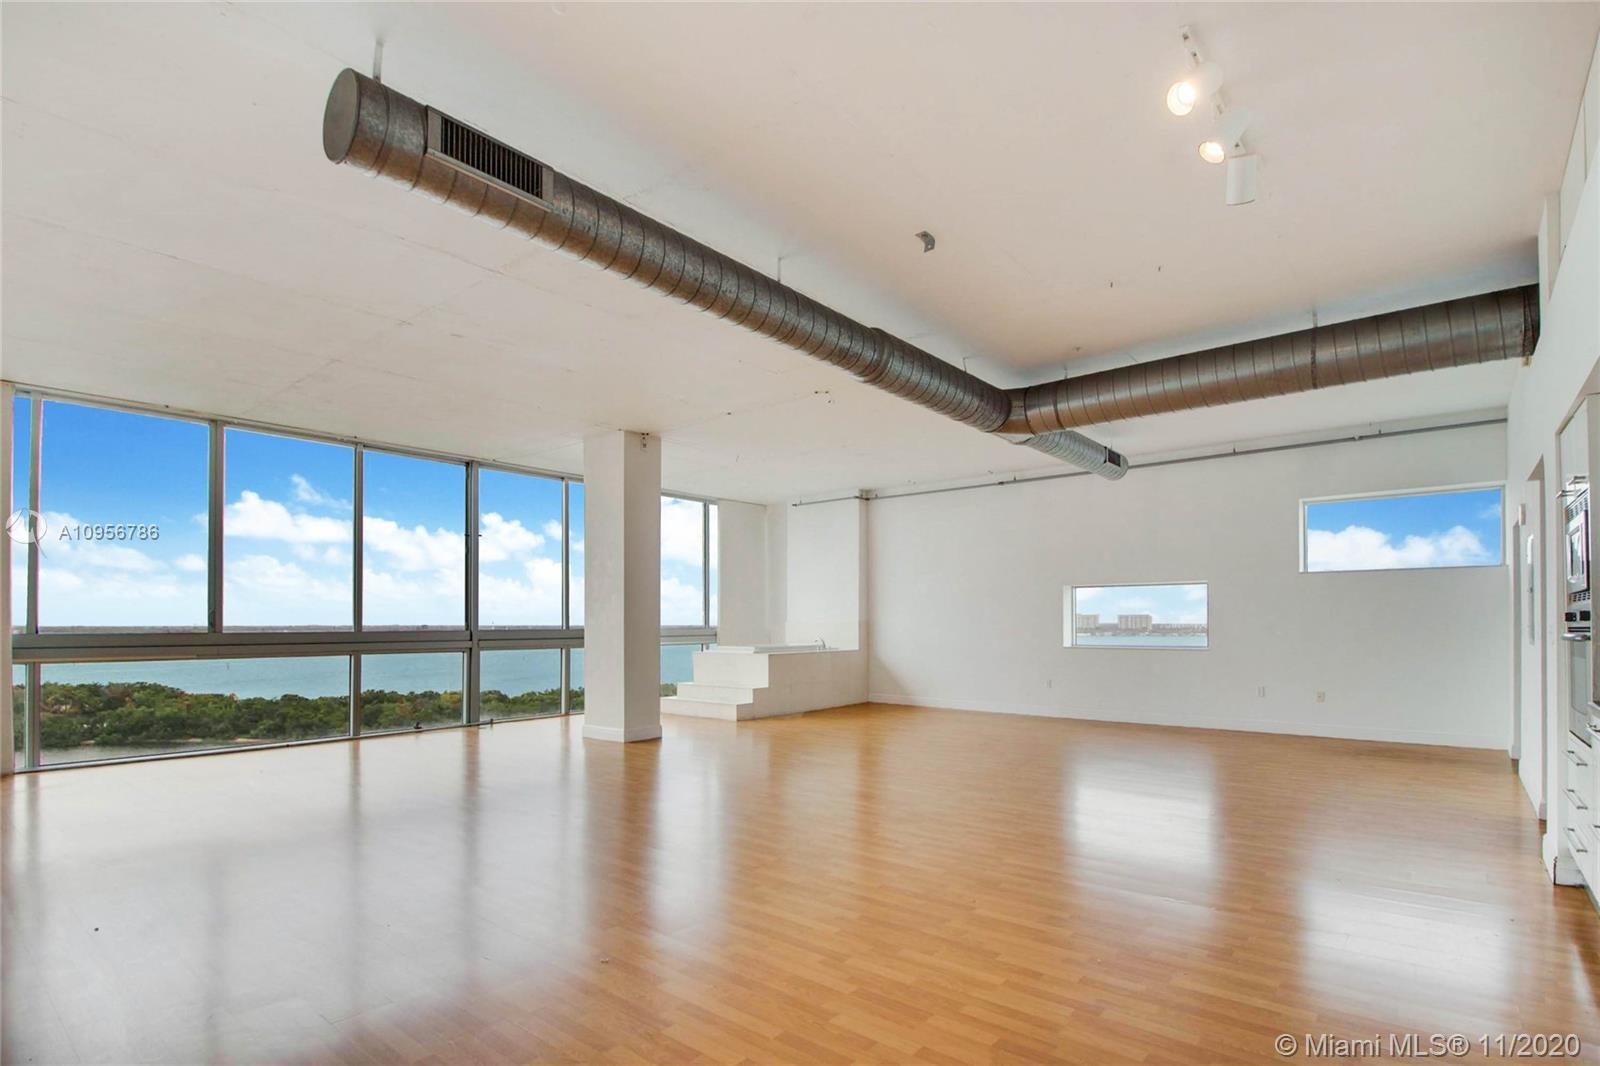 """Miami's ultimate loft building with massive """"space"""", vaulted 11' ceilings, and a wall of glass that"""